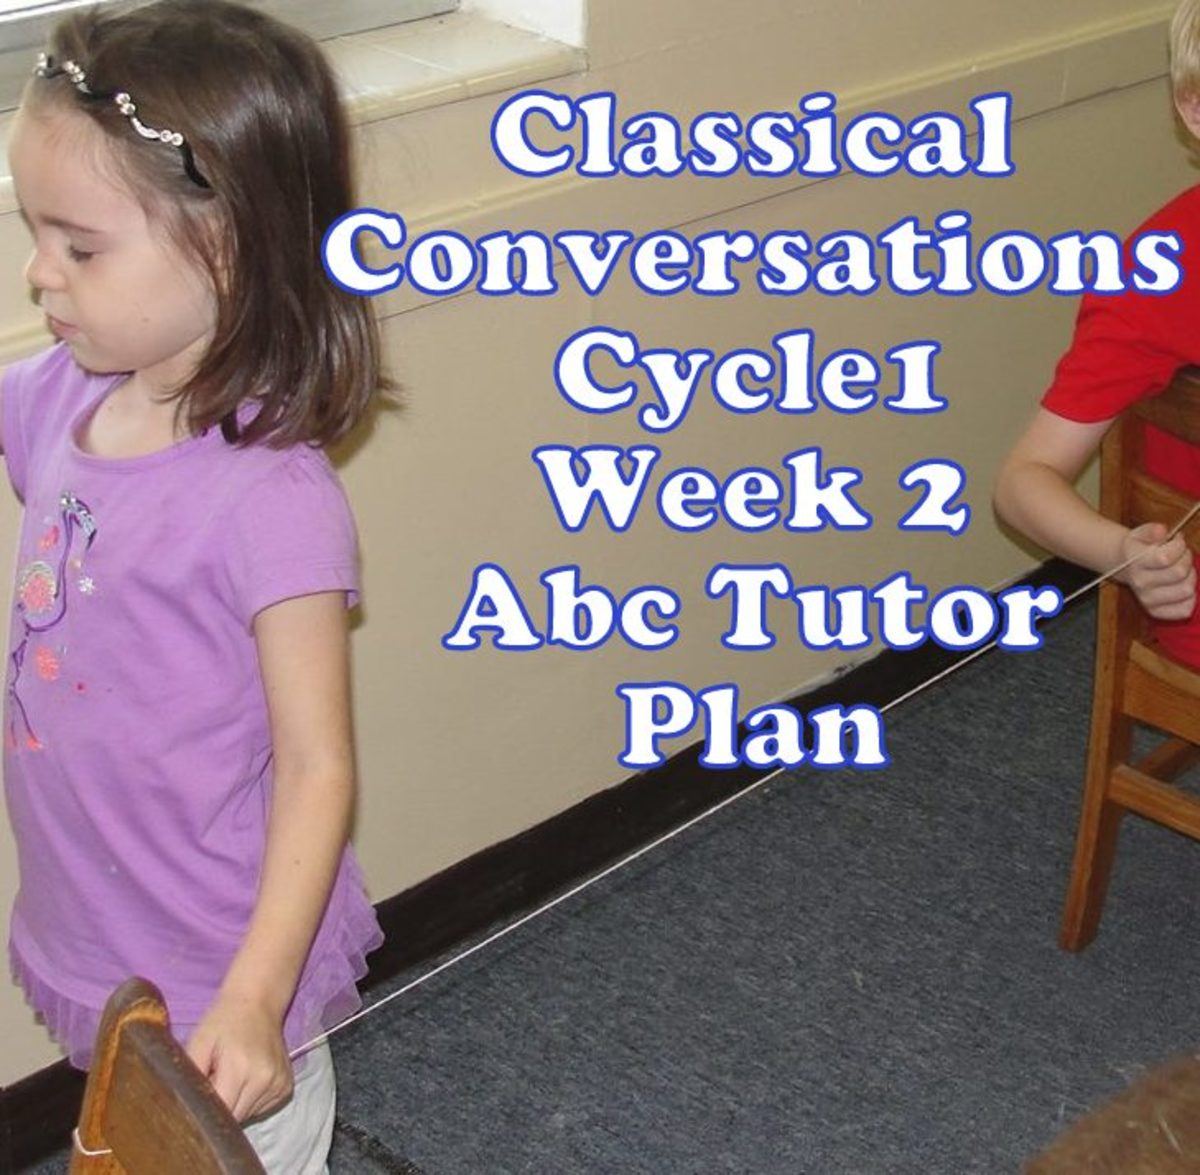 CC Cycle 1 Week 2 Plan for Abecedarian Tutors